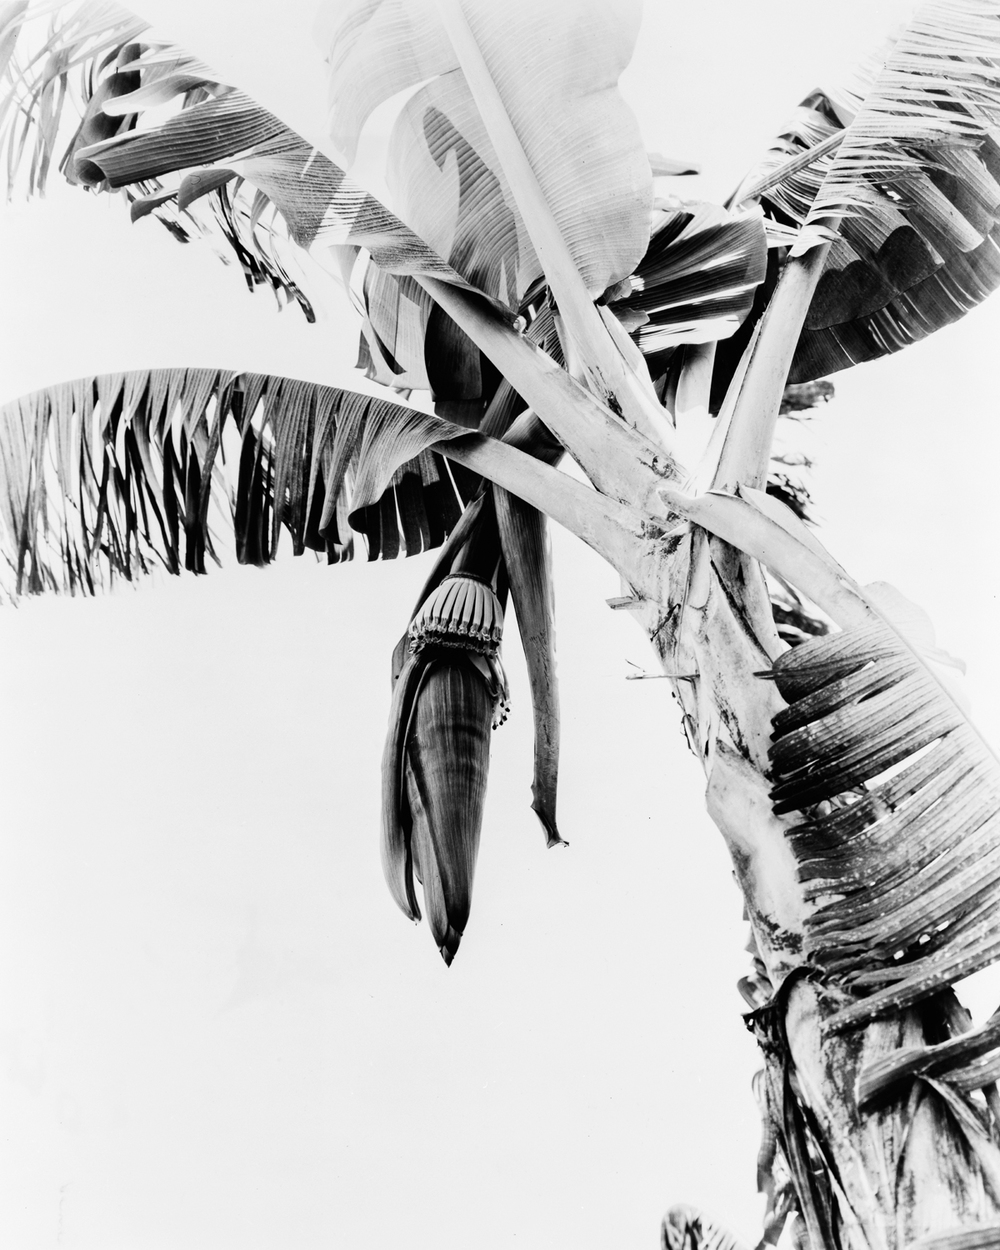 Newly Shot Banana Bud, Three Days Old , United Fruit Company, Unifruitco Magazine, 1948